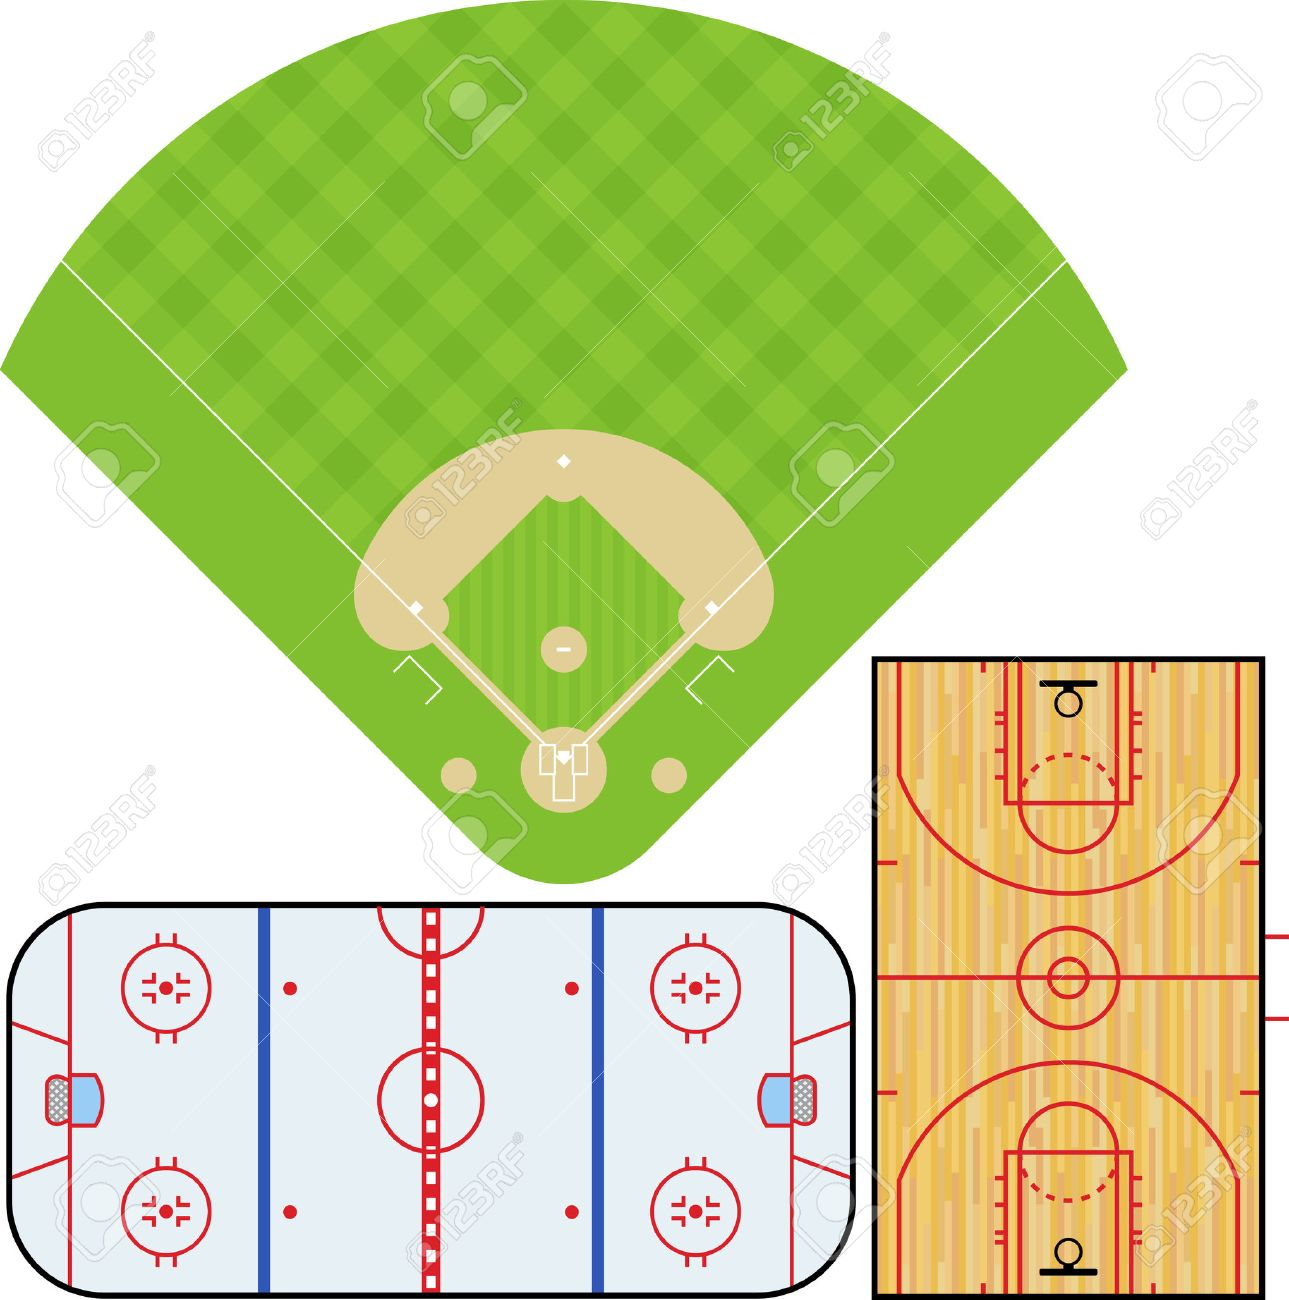 illustration of Baseball field, Basketball court, and Ice Hockey rink. Accurately proportioned. Stock Vector - 7587854